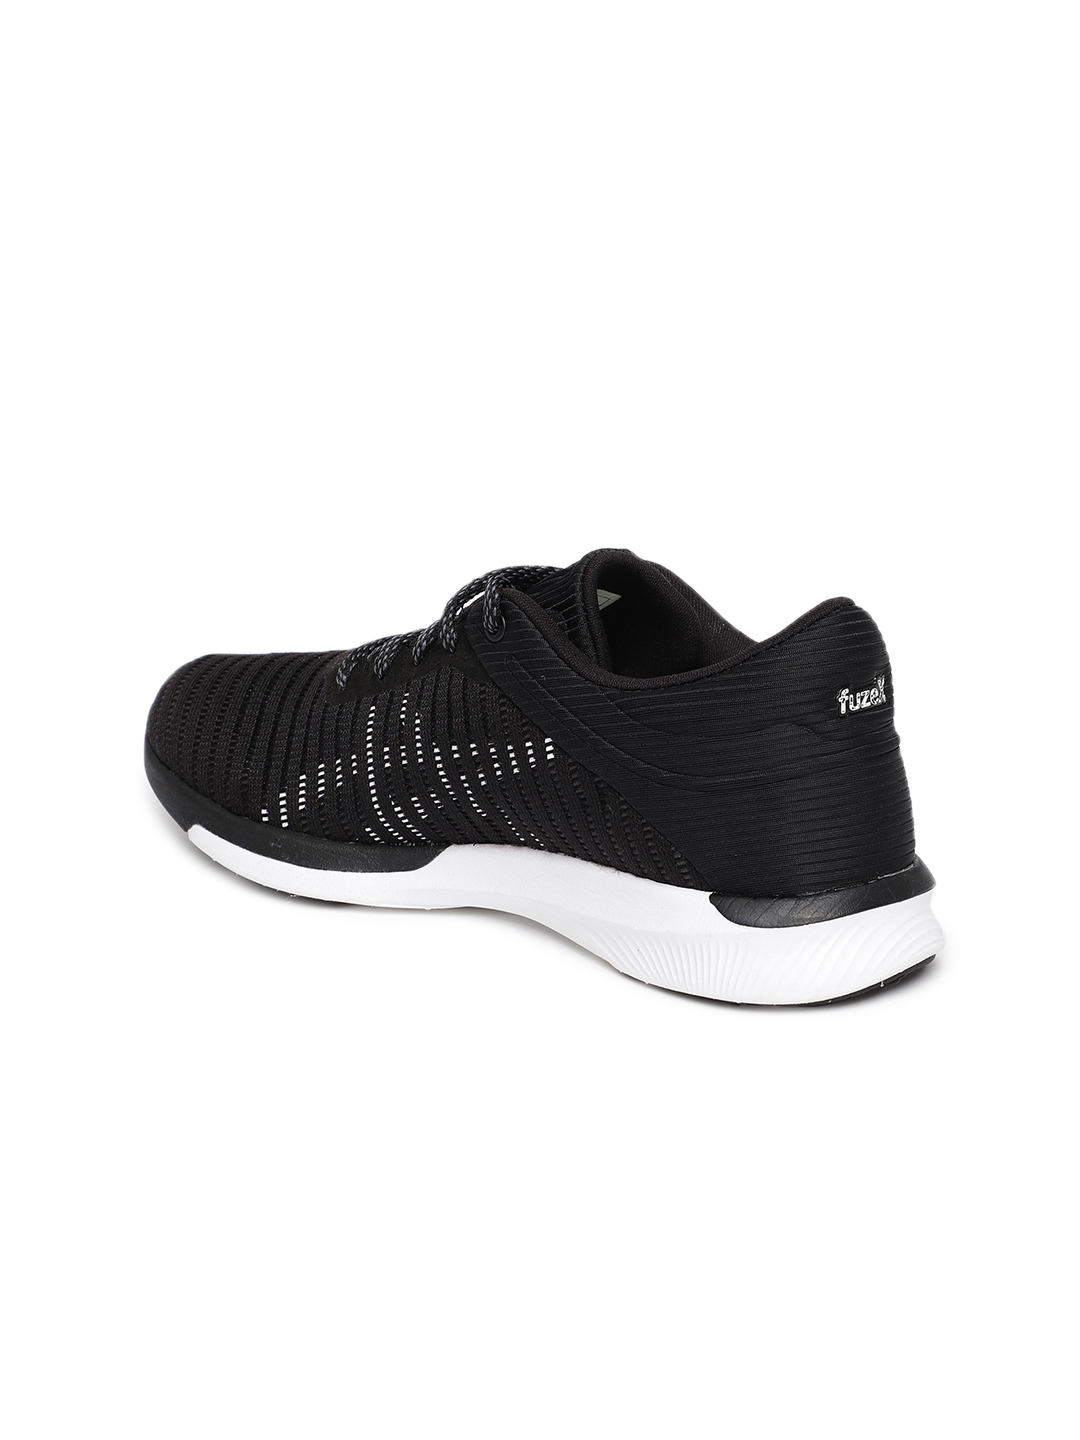 20835a639af9 Buy ASICS Women FuzeX Rush Adapt Black Running Shoes - Sports Shoes ...